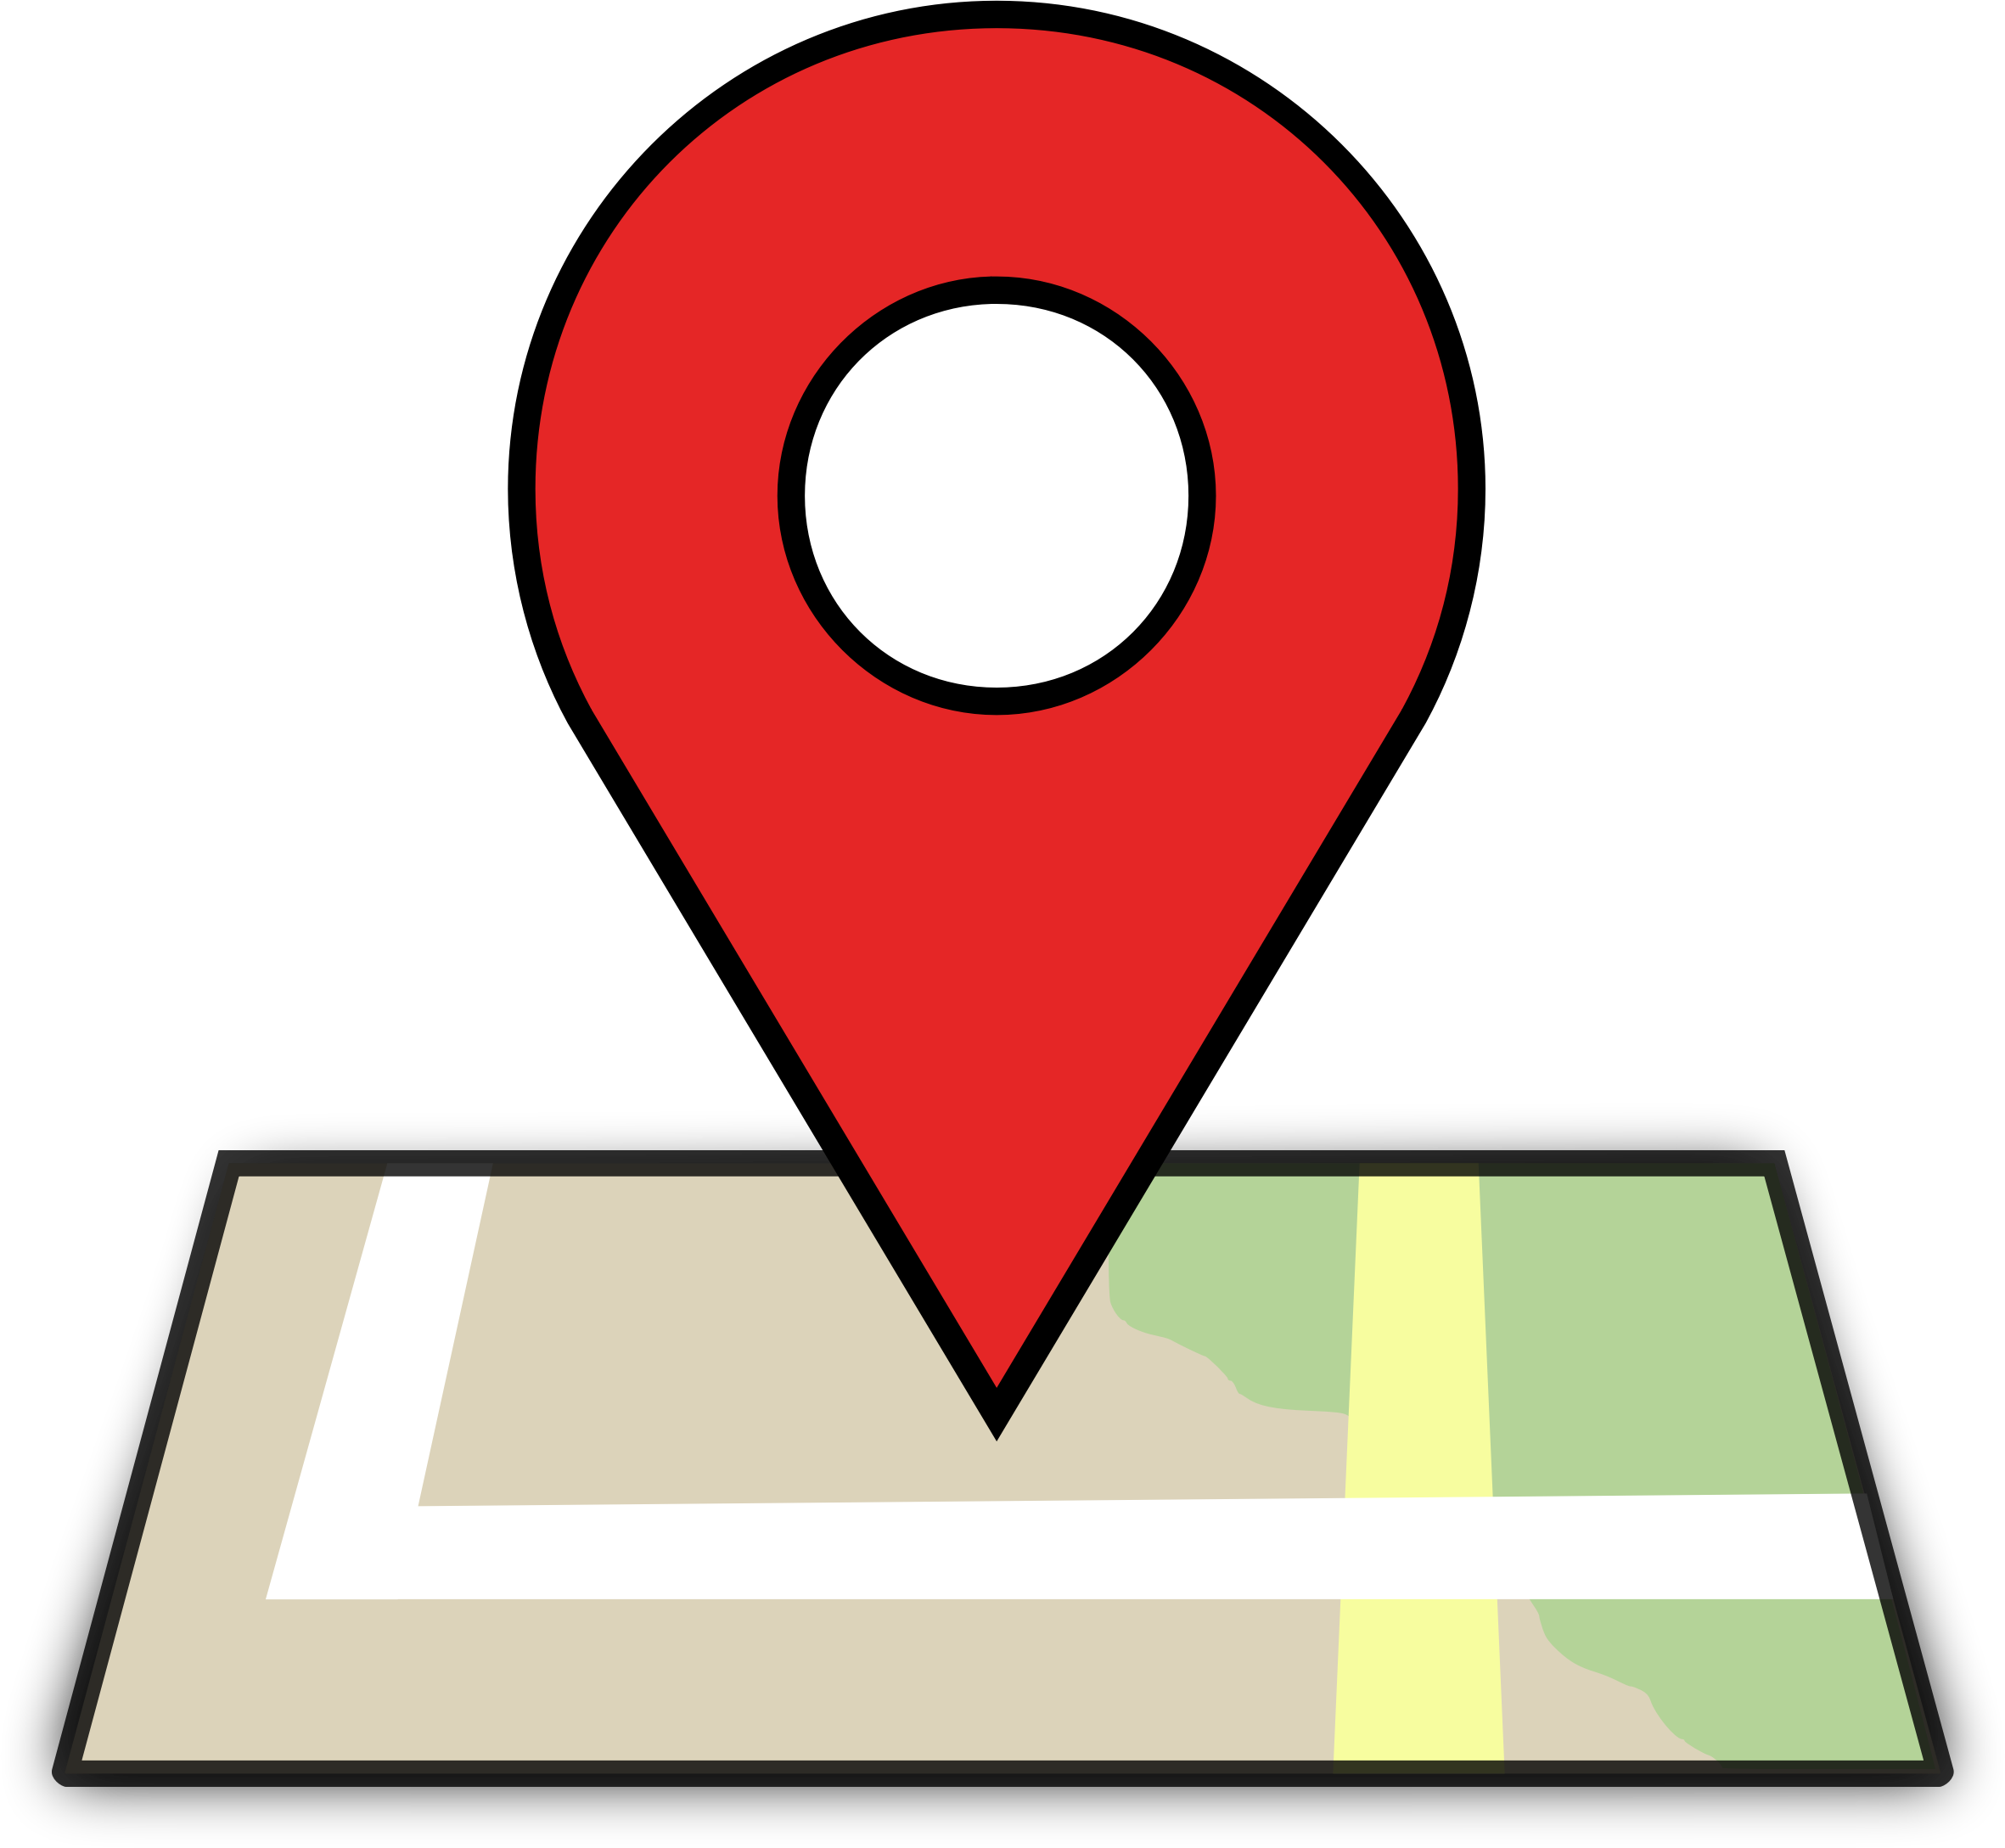 Google map images clipart svg free library Clipart - Map Location svg free library